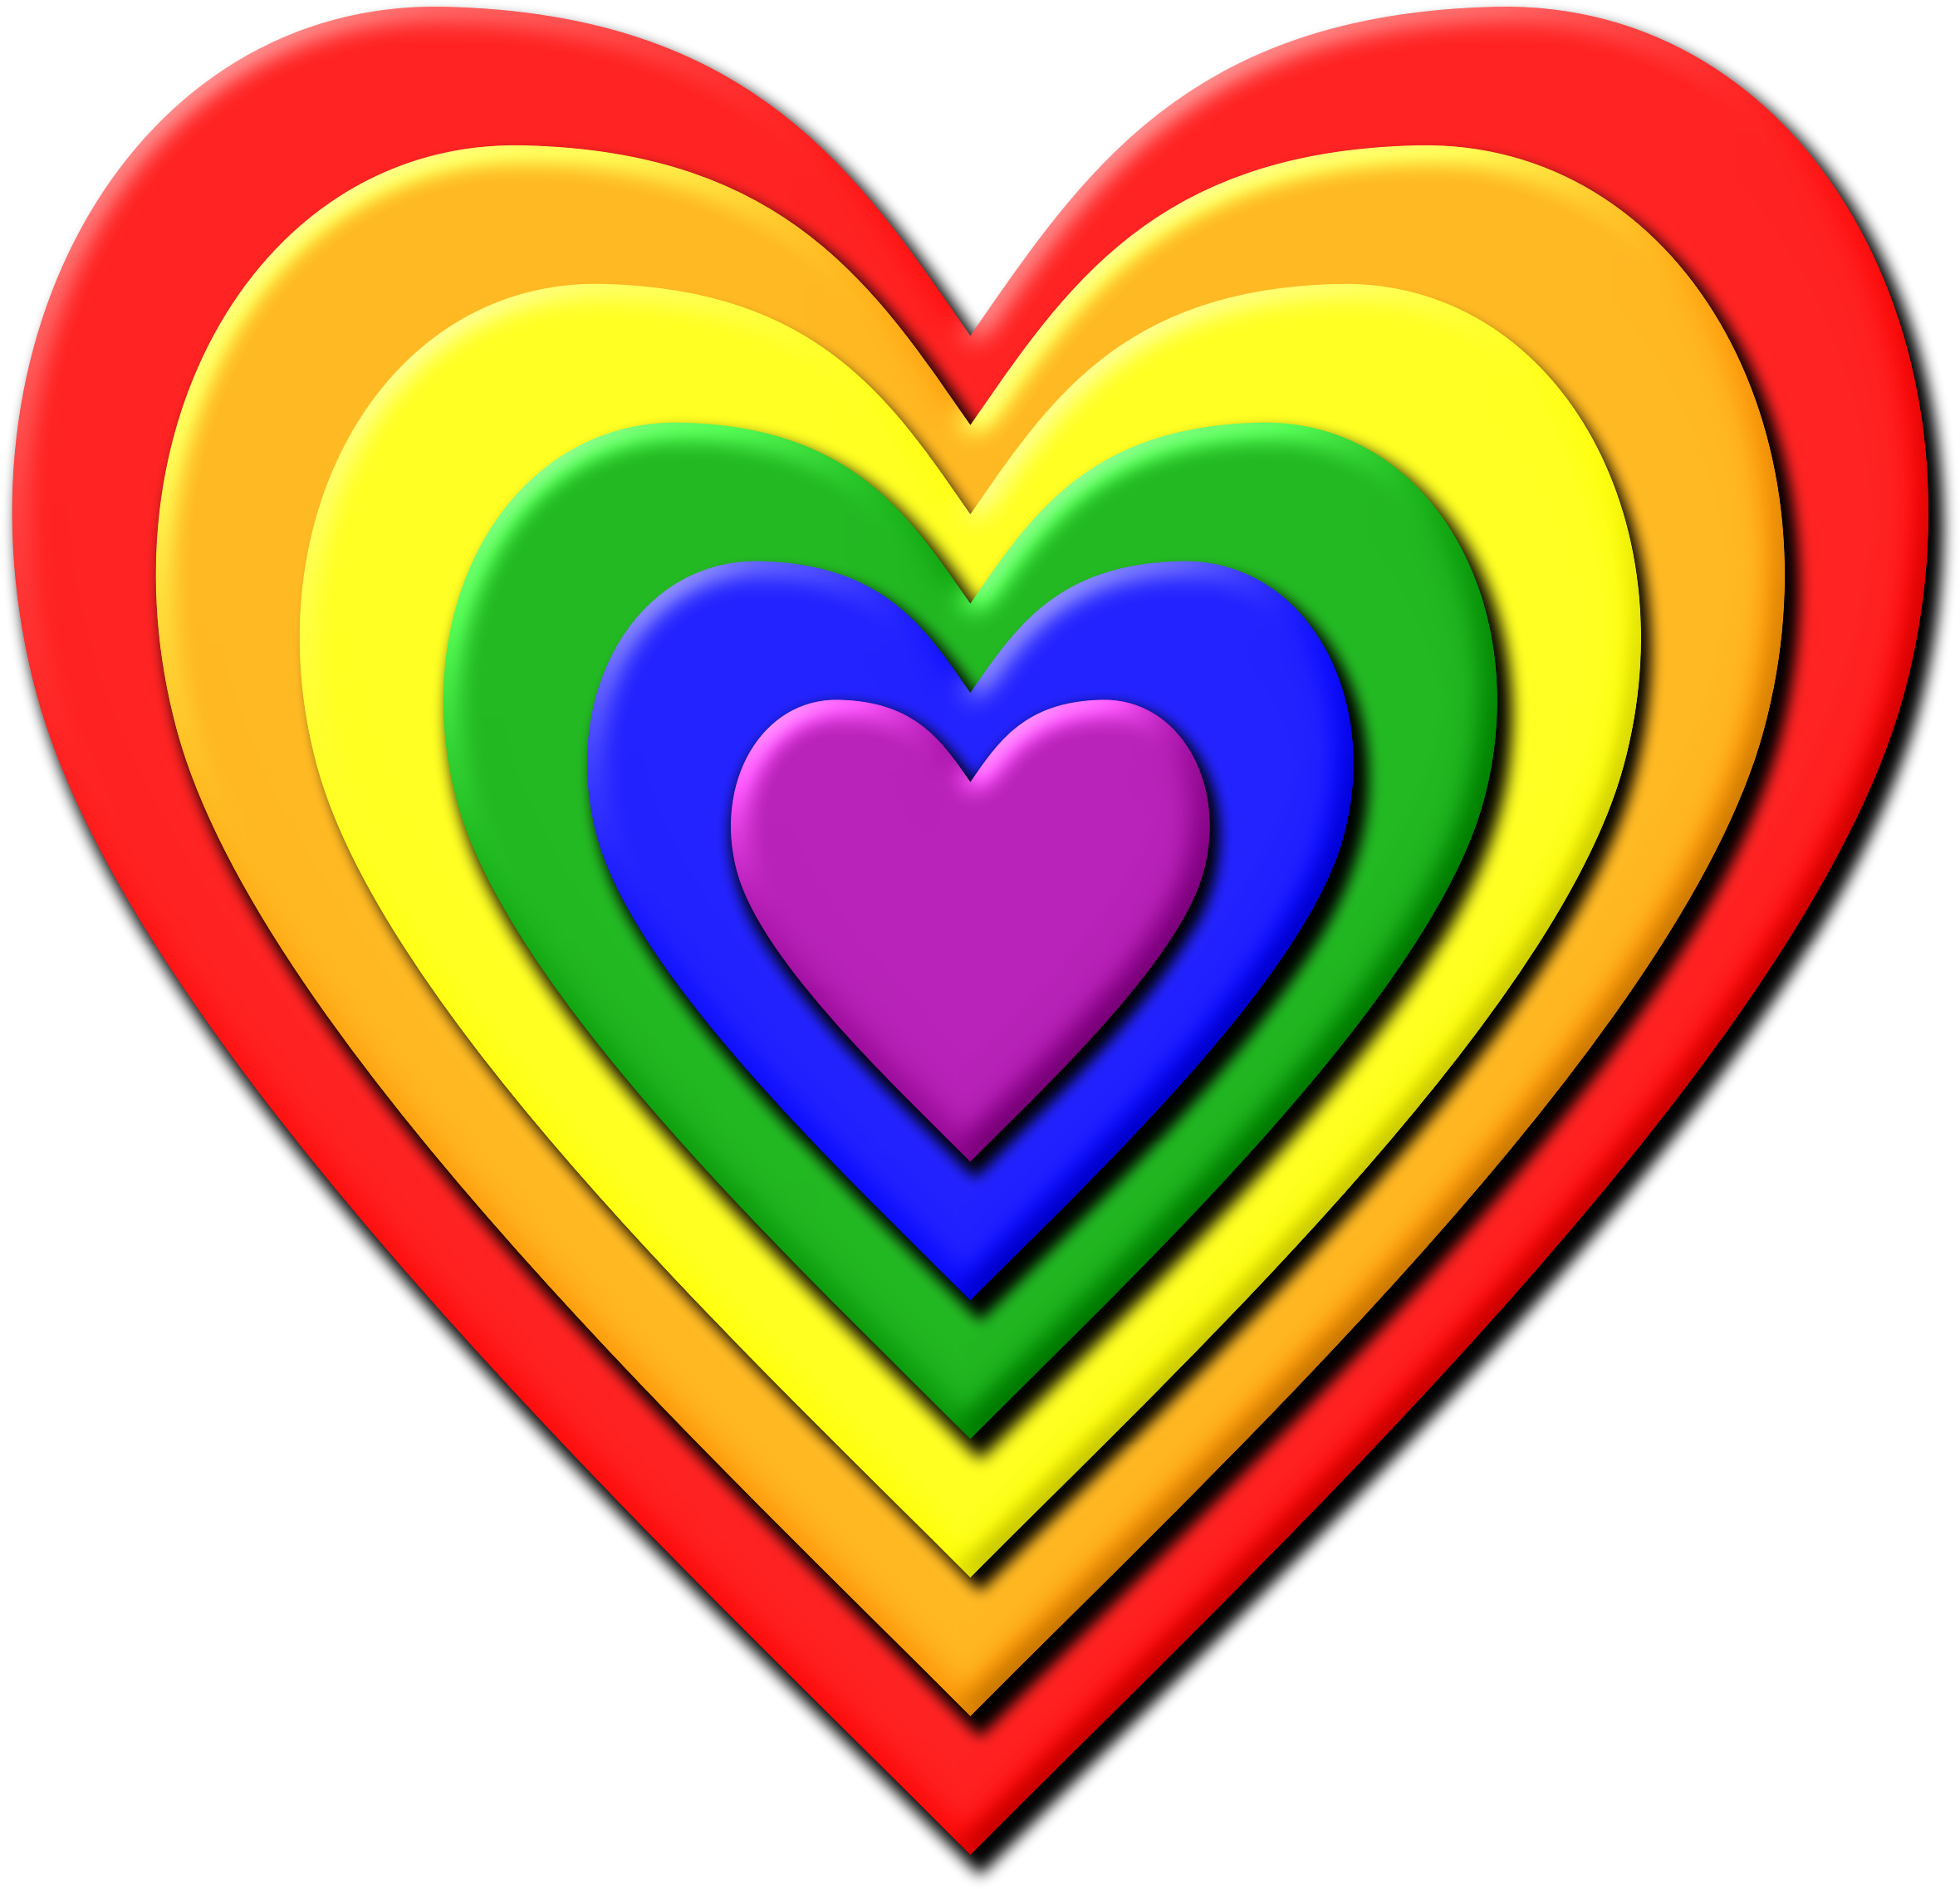 multi layered rainbow heart vector clipart image free stock photo rh goodfreephotos com